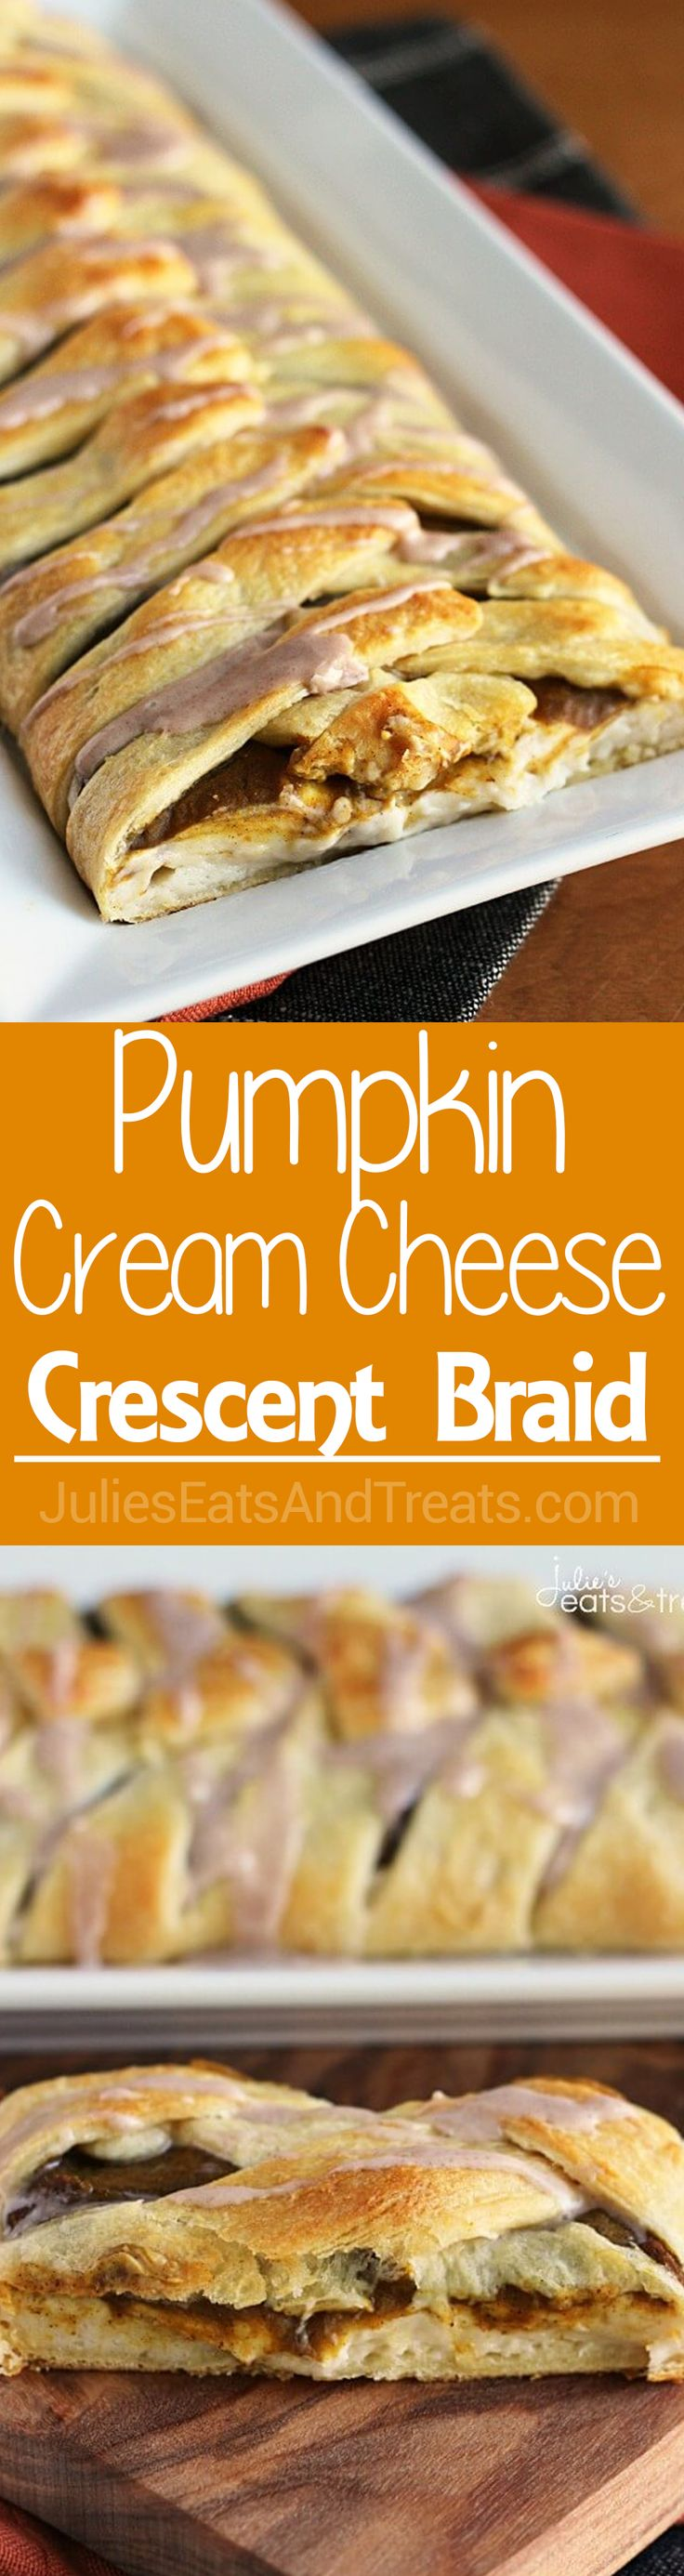 Pumpkin Cream Cheese Crescent ~ Flaky Crescent Rolls Braided and Stuffed with Cream Cheese and Pumpkin! Drizzled with Cinnamon…